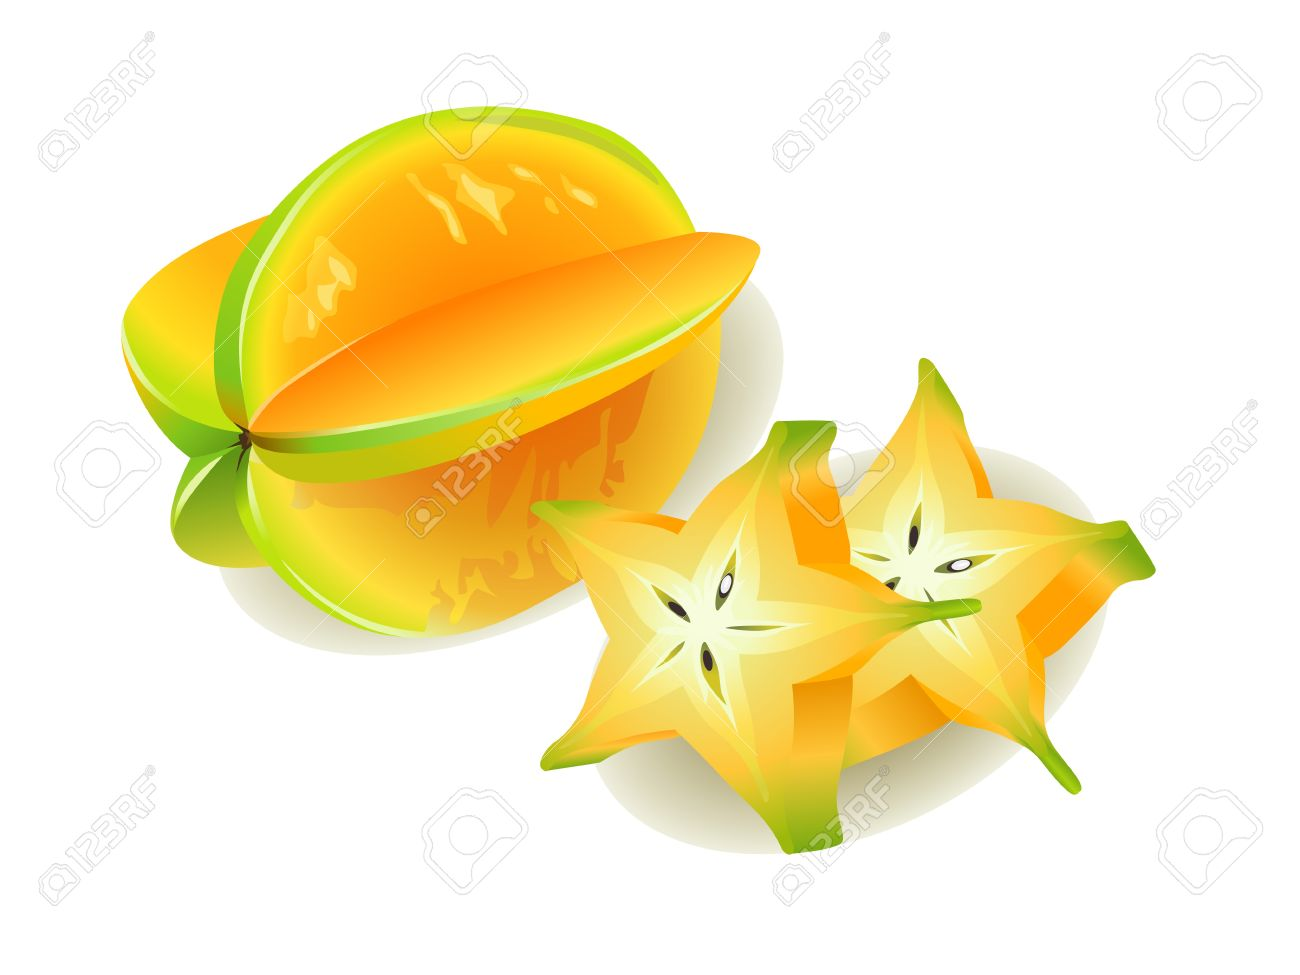 Realistic Vector Illustration Of A Carambola Or Starfruit And ...